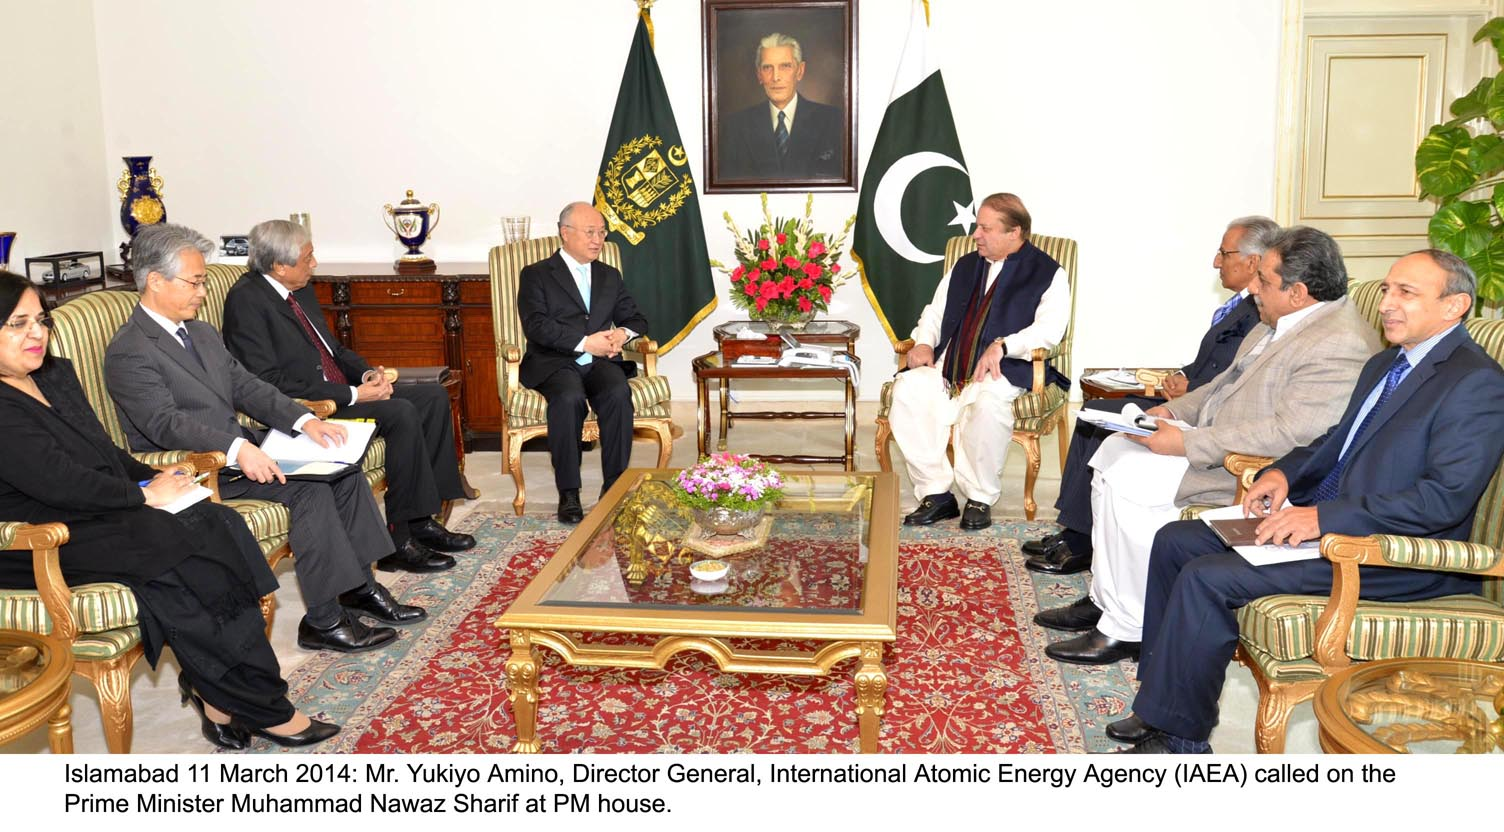 dg iaea yukiyo amano in a meeting with prime minister nawaz sharif at the pm house on tuesday photo pid